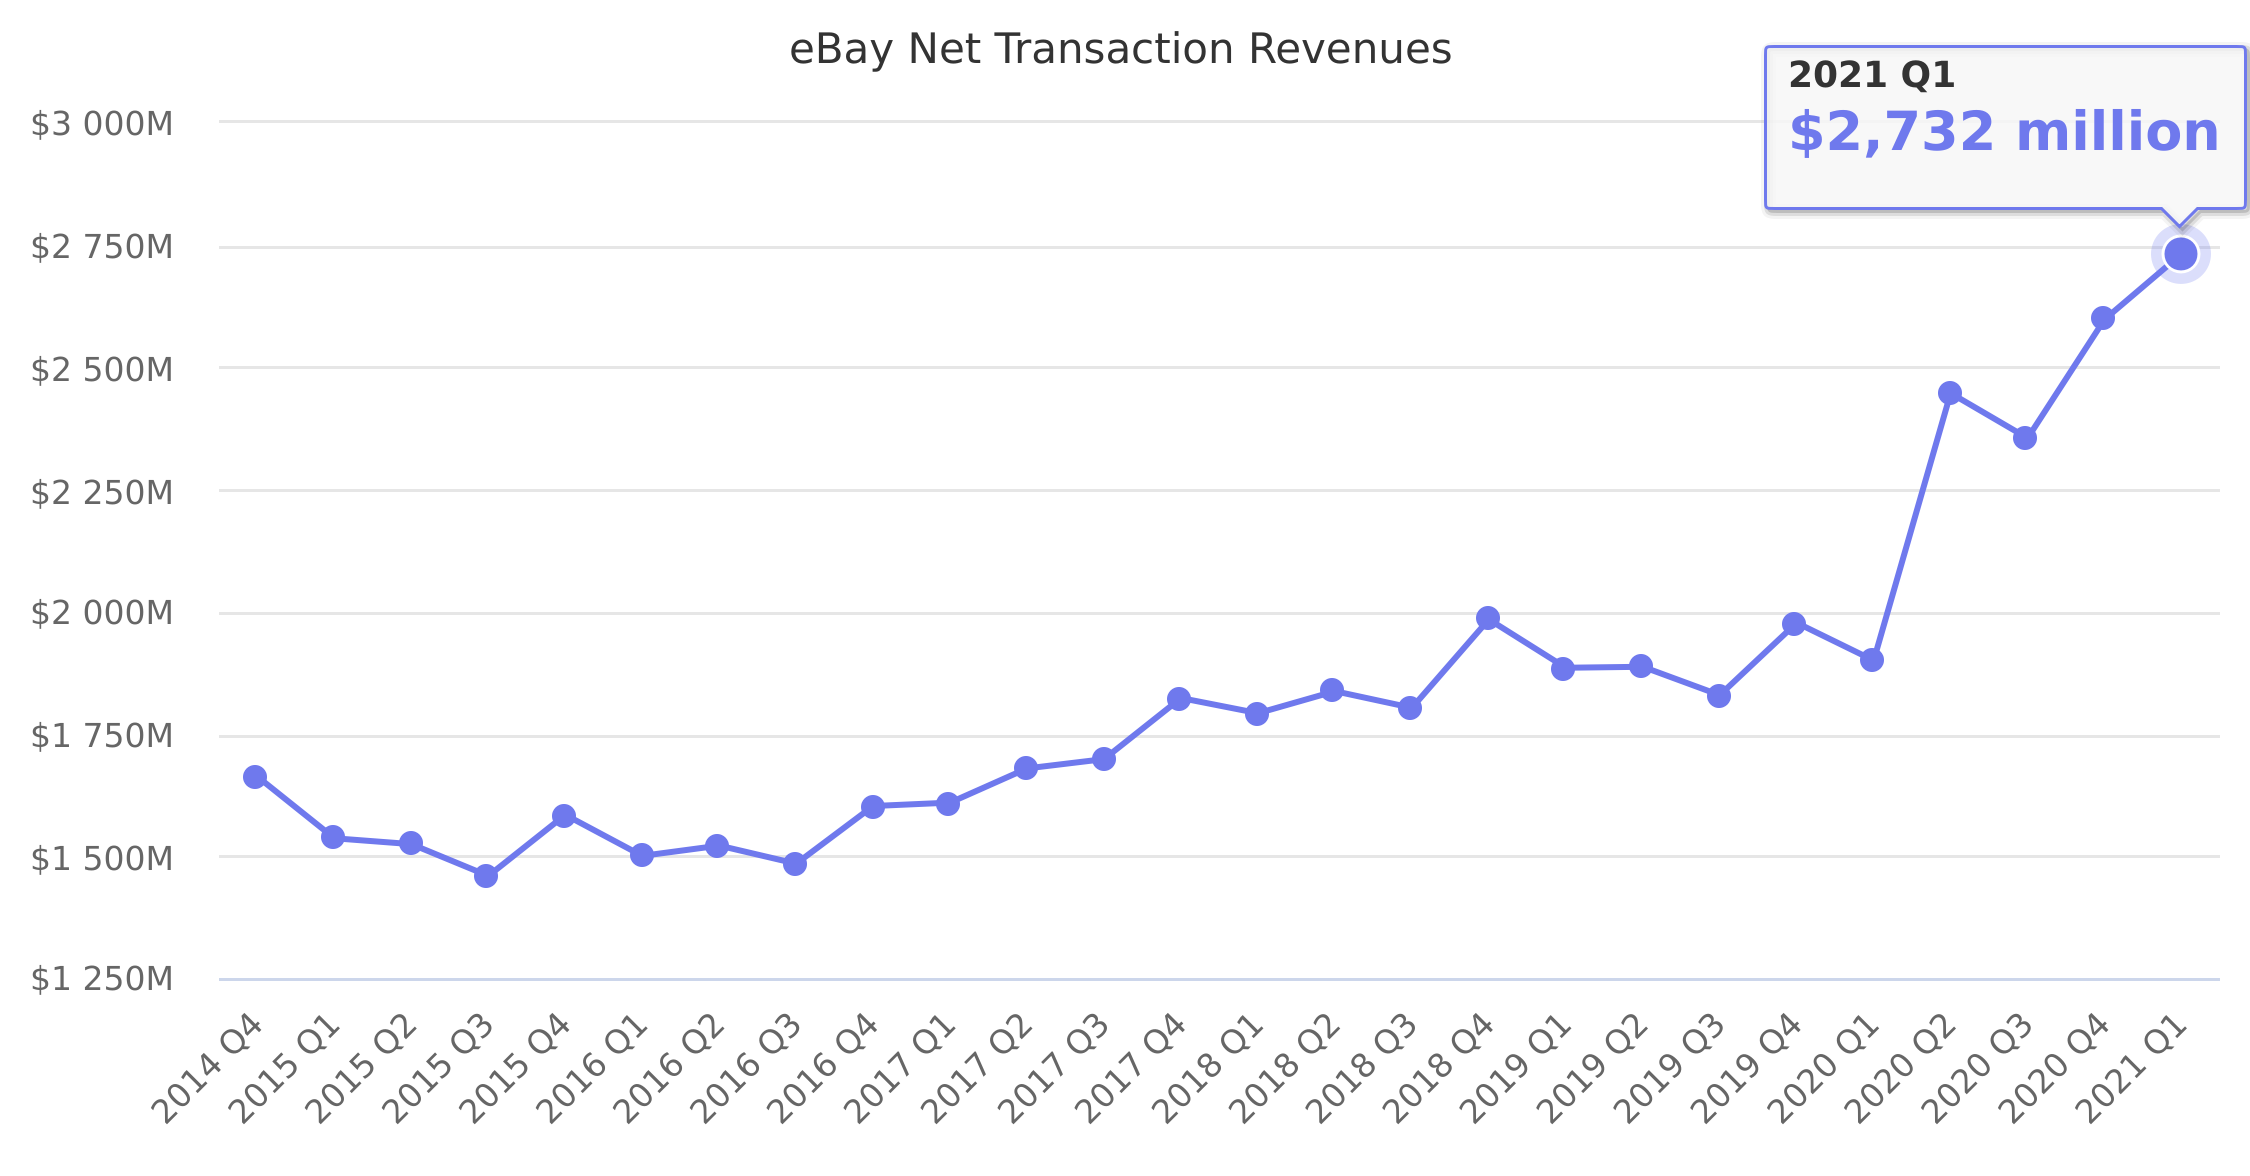 eBay Net Transaction Revenues 2014-2019